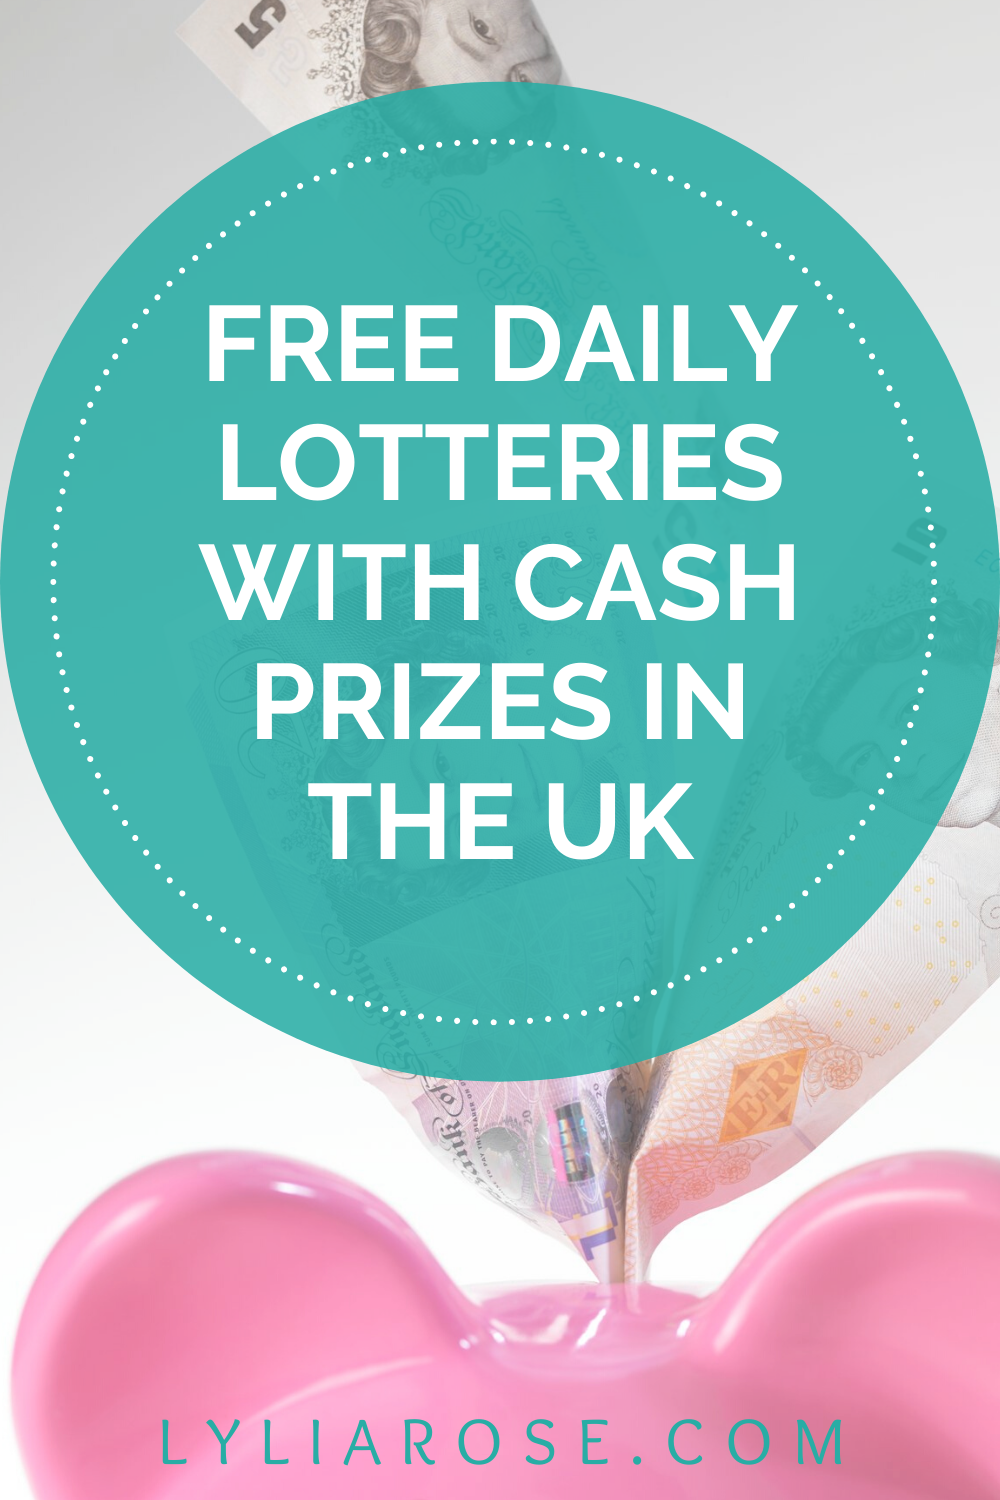 Free daily lotteries with cash prizes in the UK (1)